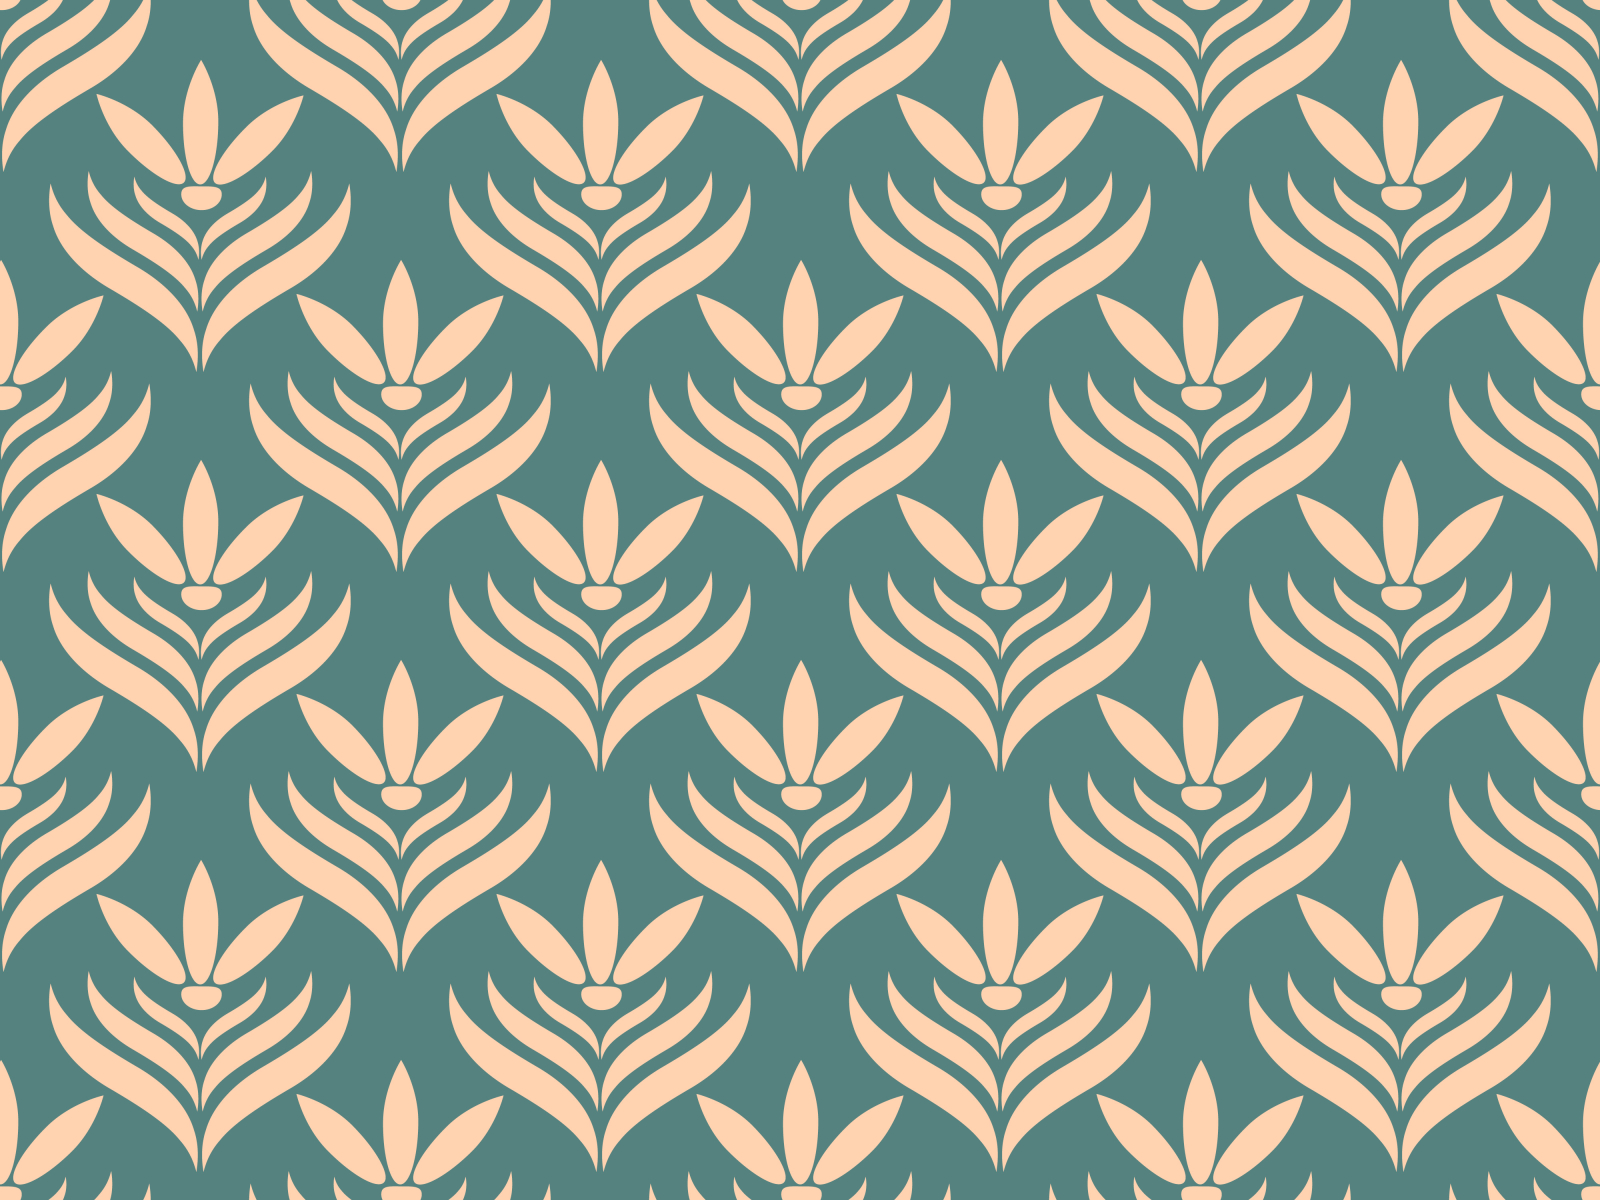 Seamless Floral Pattern By Margarita Starchenko On Dribbble